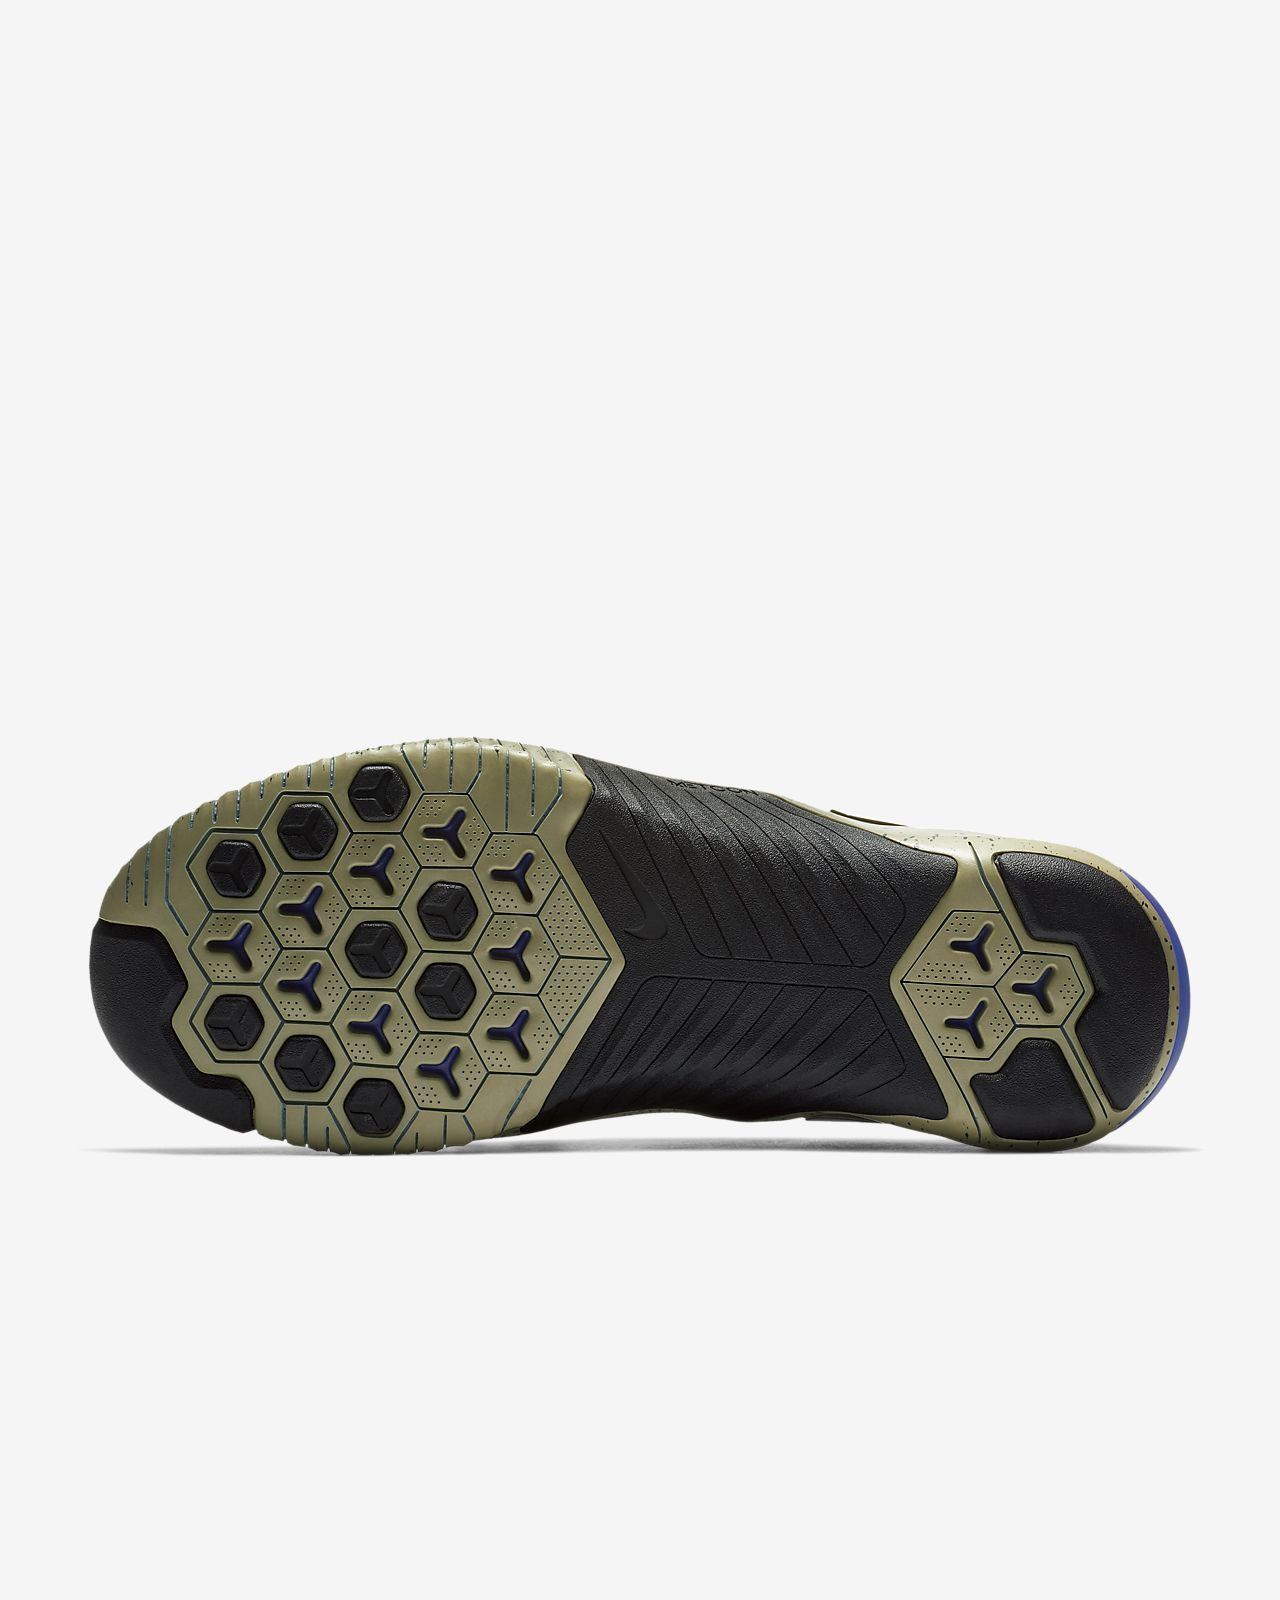 new product 7b3a0 dabde ... Nike Free x Metcon Cross-Training Weightlifting Shoe